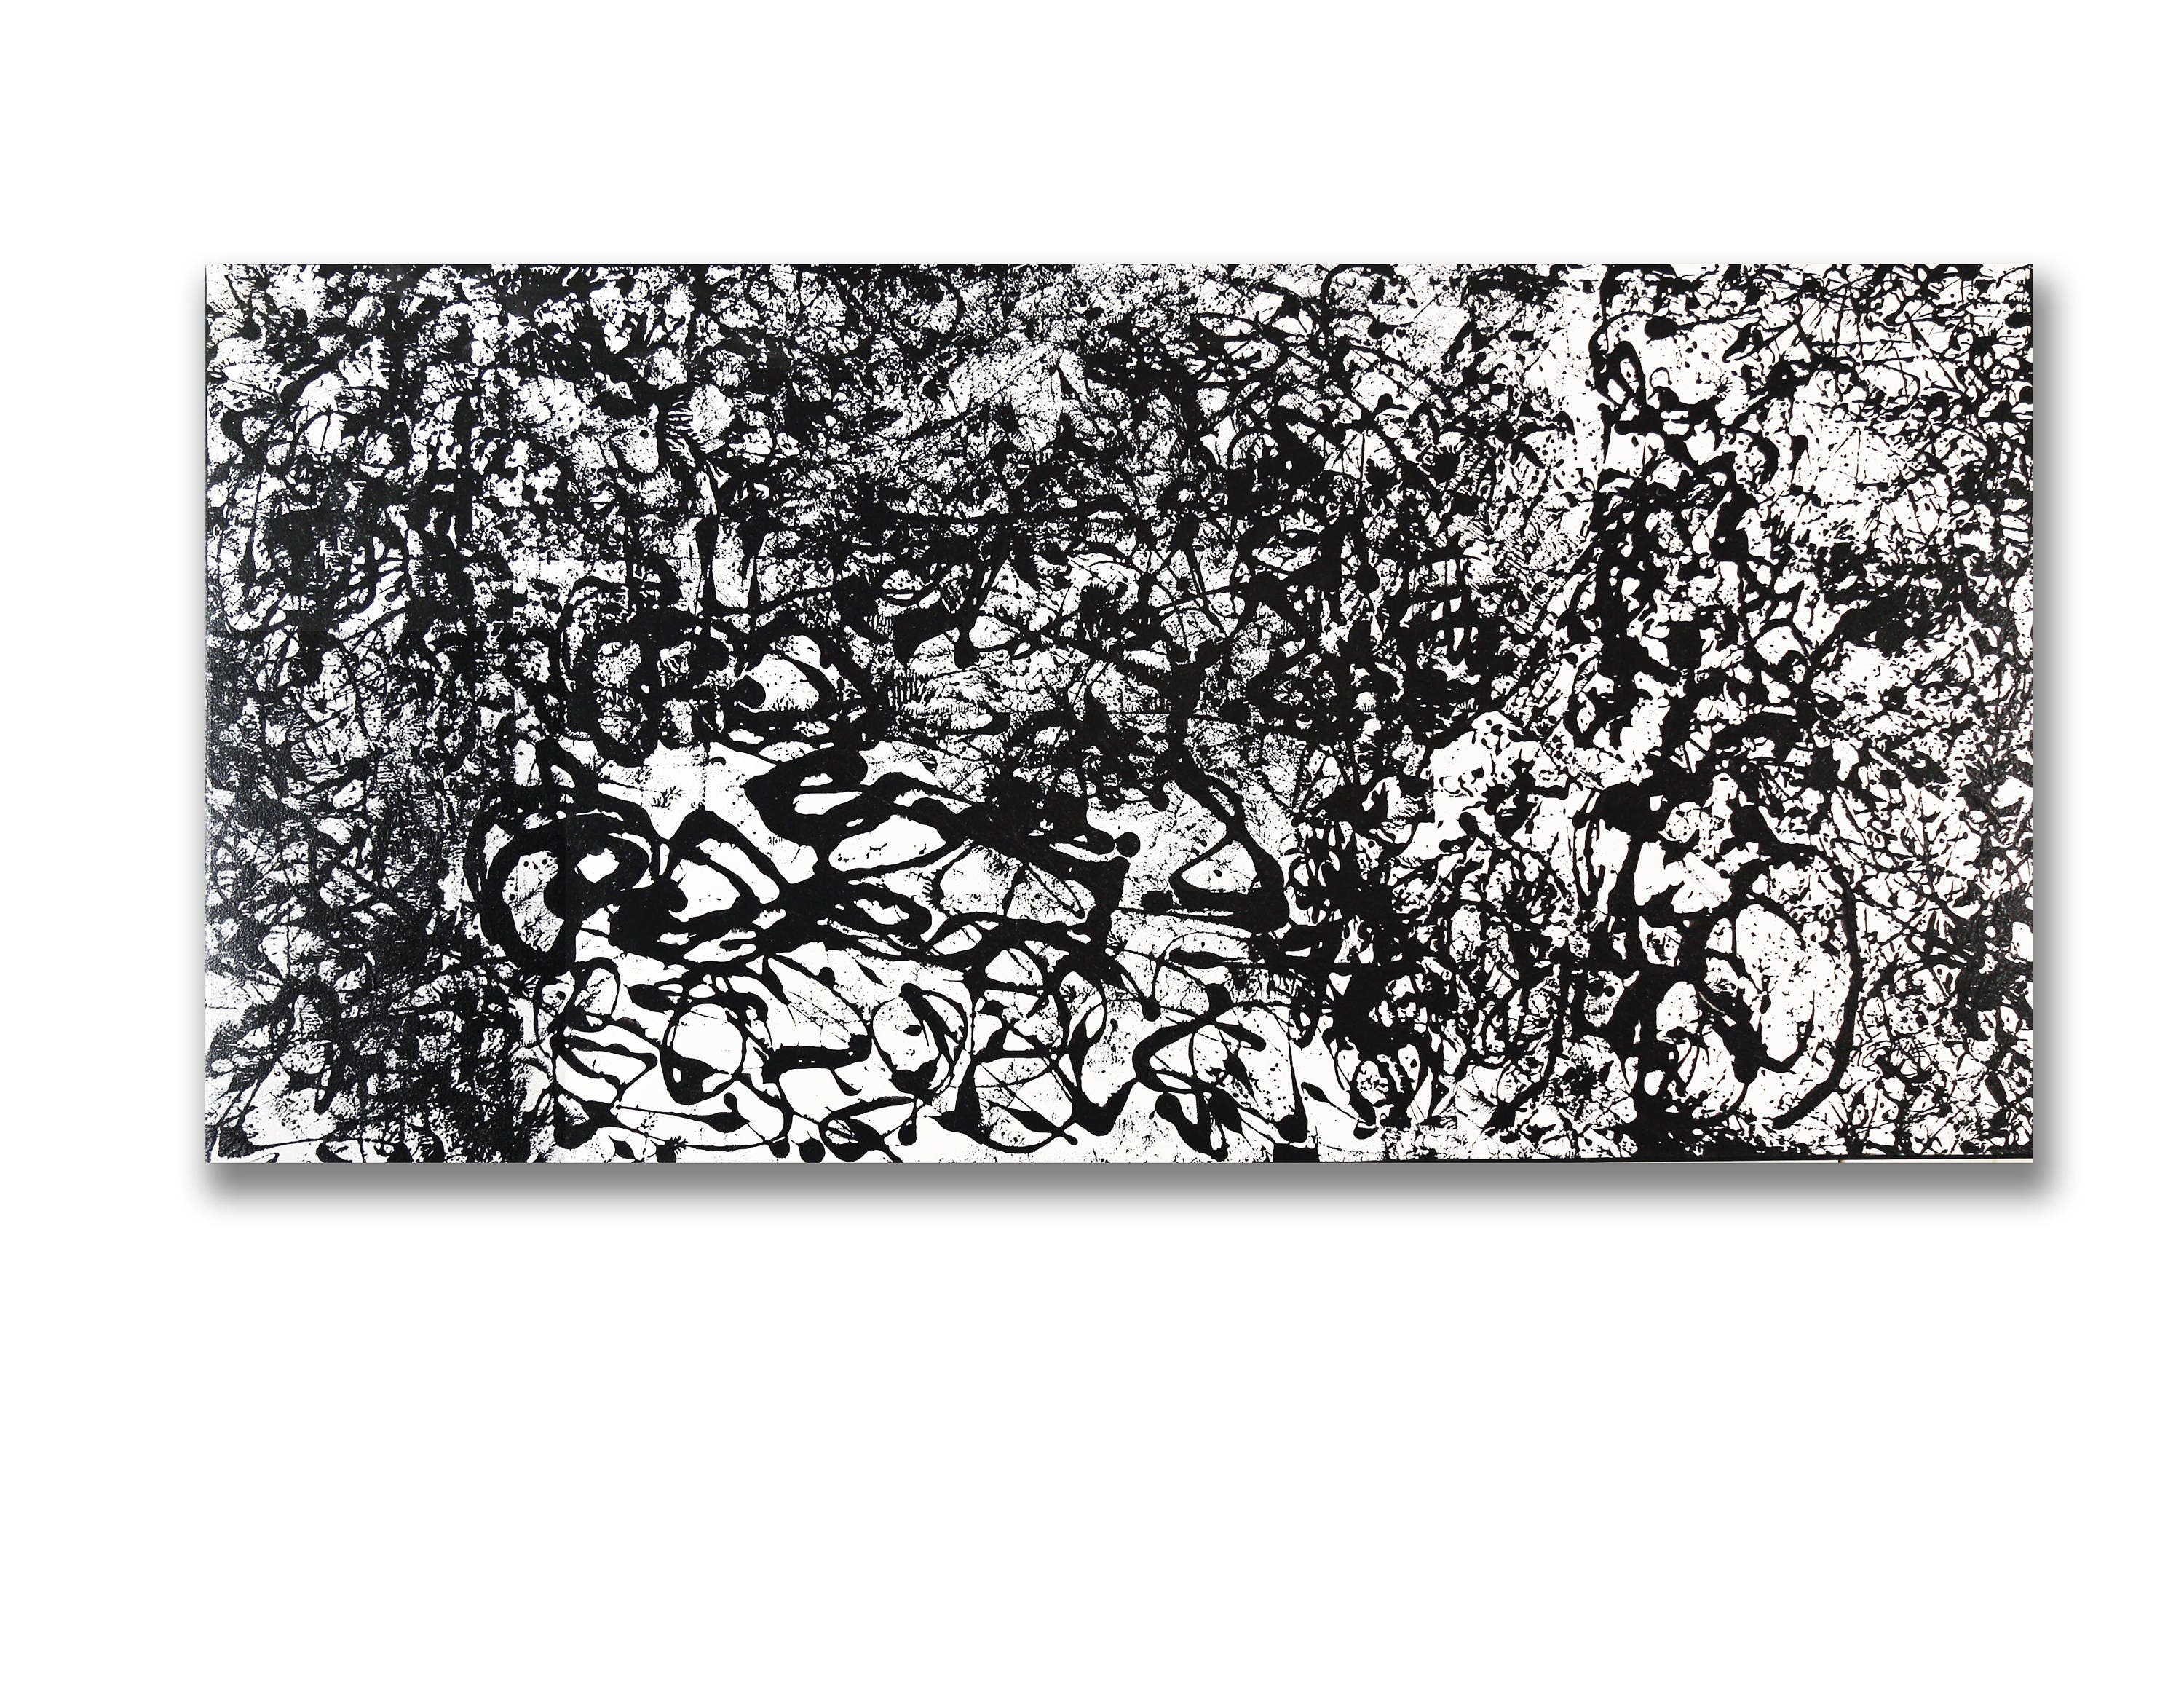 Large contemporary black white abstract painting 30x60x1 75 acrylic on gallery canvas bwsum51 by k davies